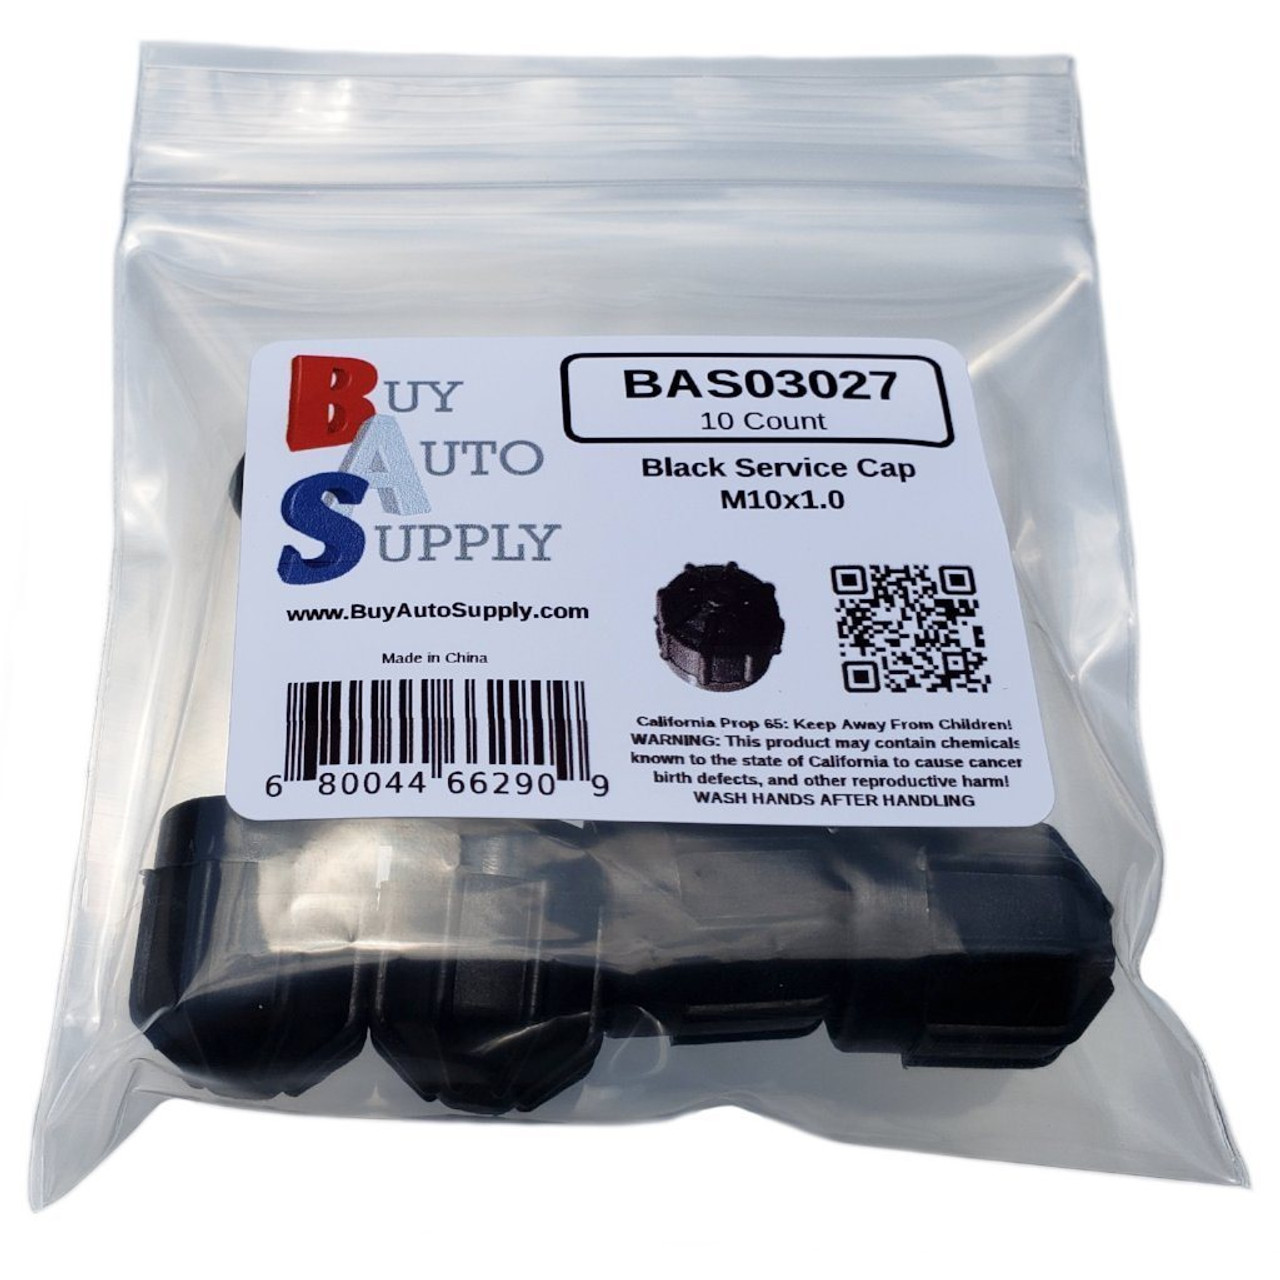 Bag of 10 AC Service Caps Black M10x1.0 Interchanges:  BMW 64538387438